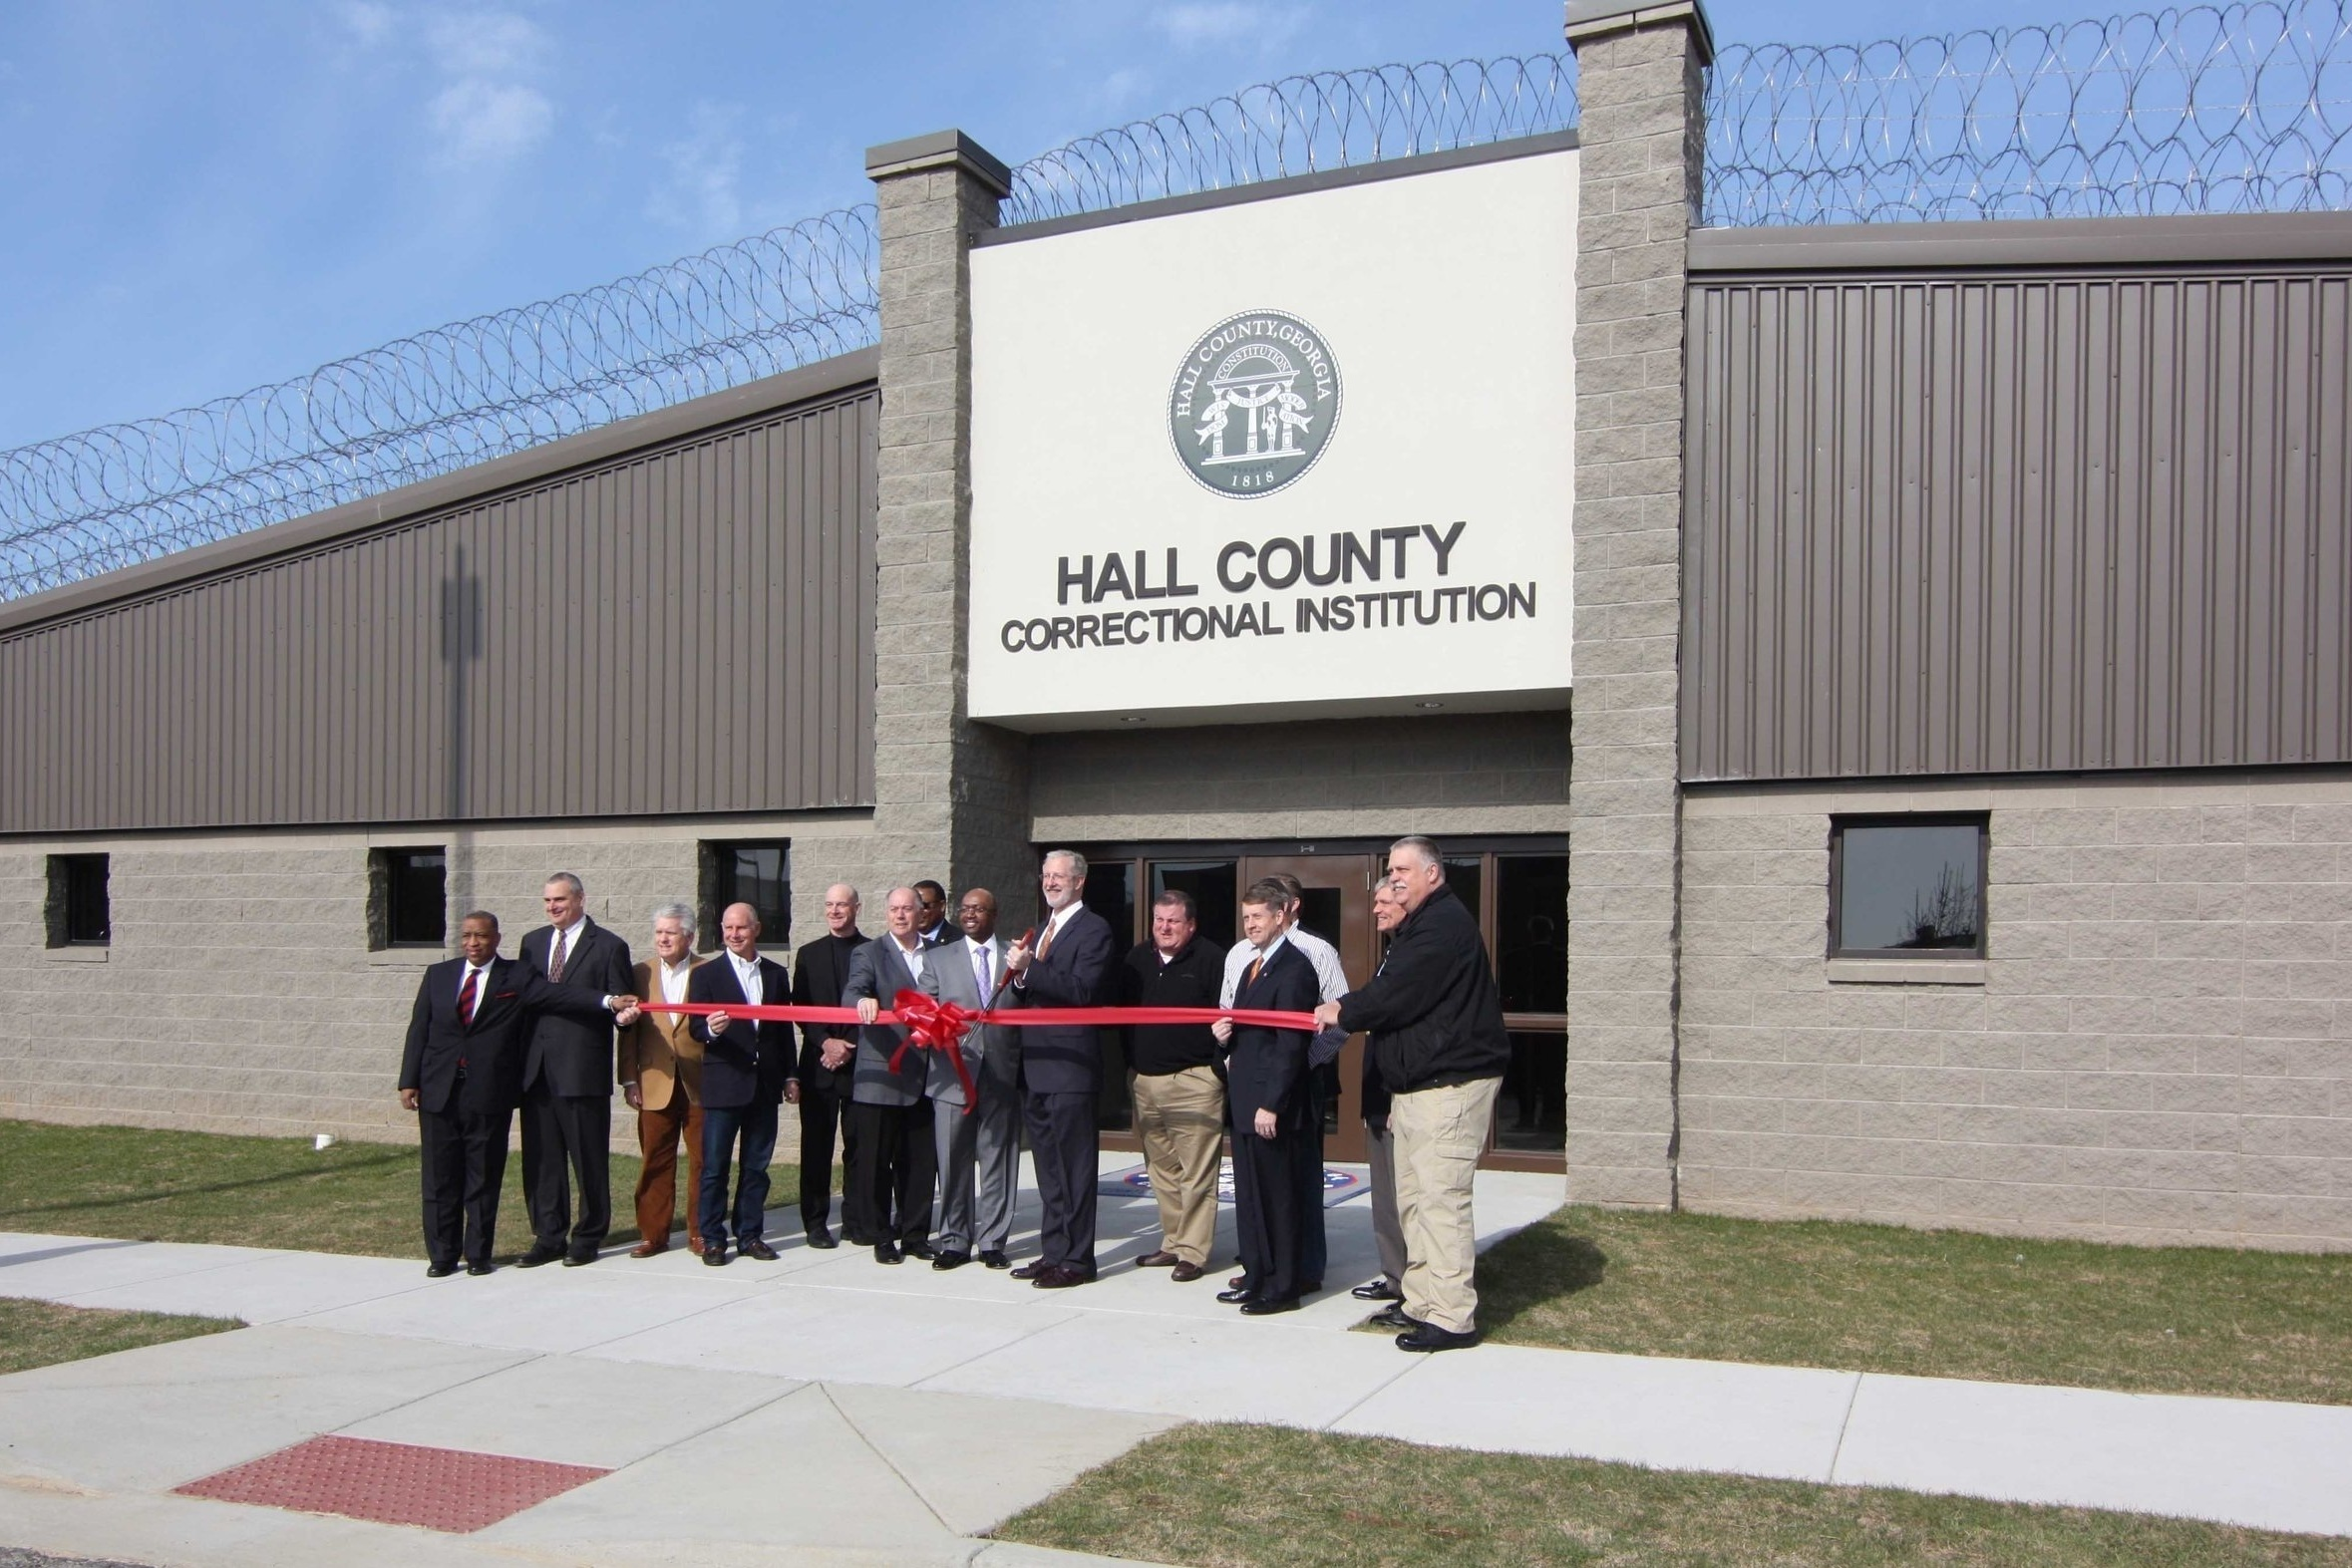 Ribbon Cutting was Held for the Hall County Correctional Institution in Gainesville, Georgia